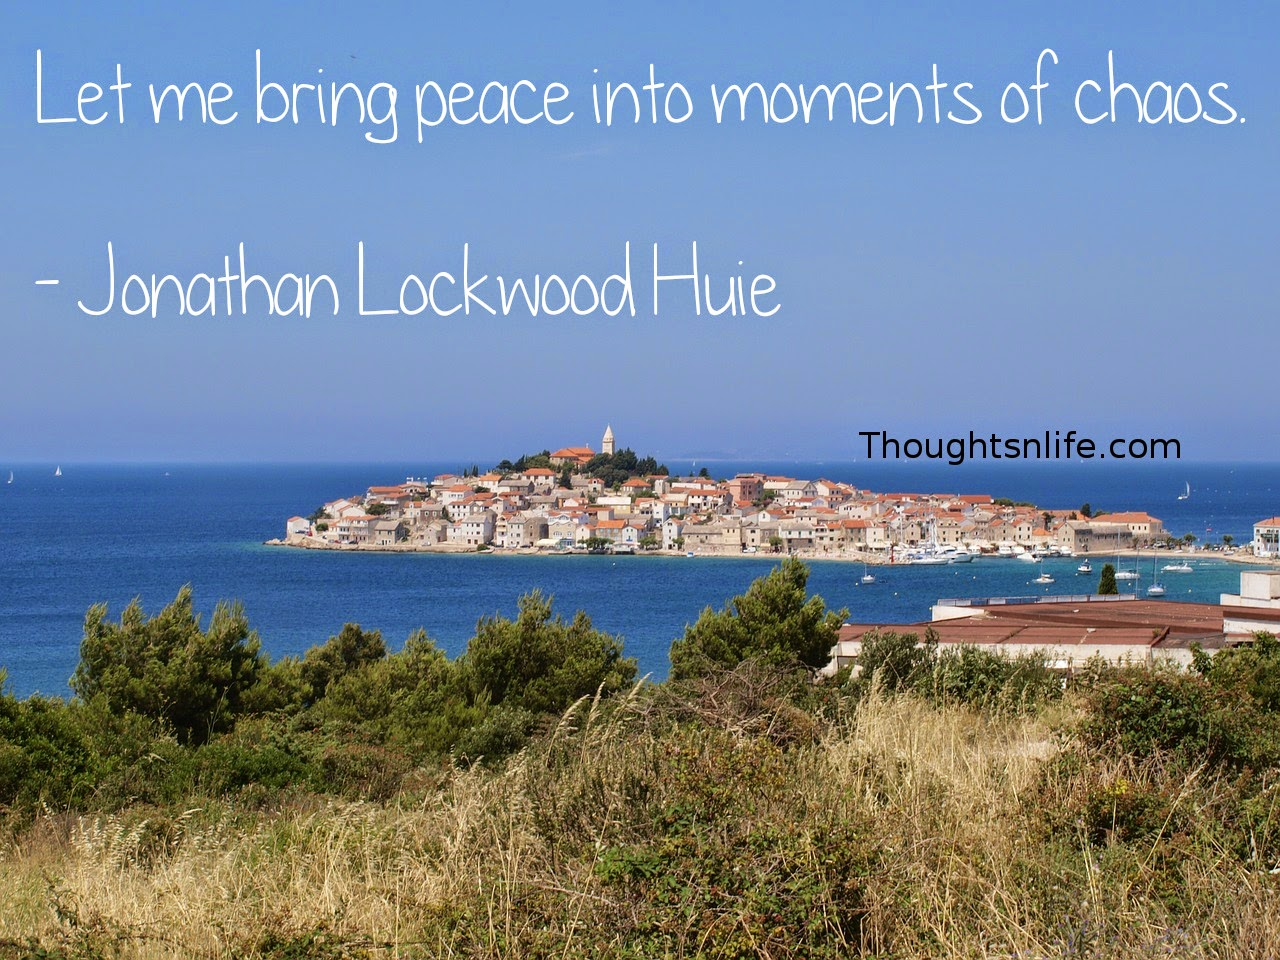 Thoughtsnlife.com: Let me bring peace into moments of chaos. - Jonathan Lockwood Huie